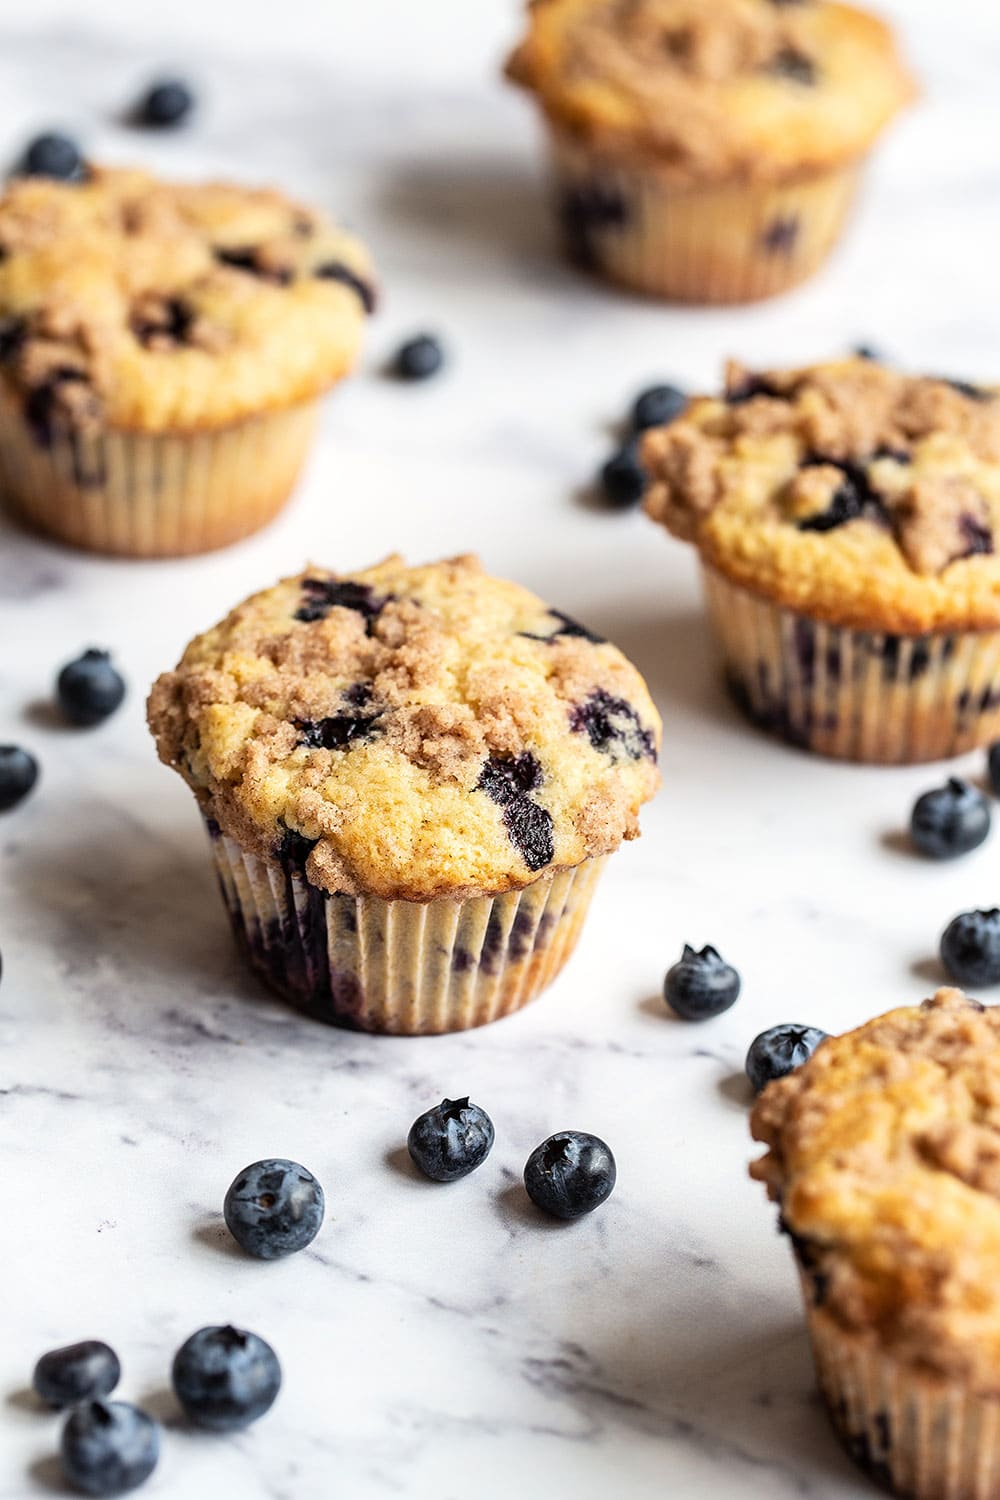 Fresh blueberry muffins on a marble counter